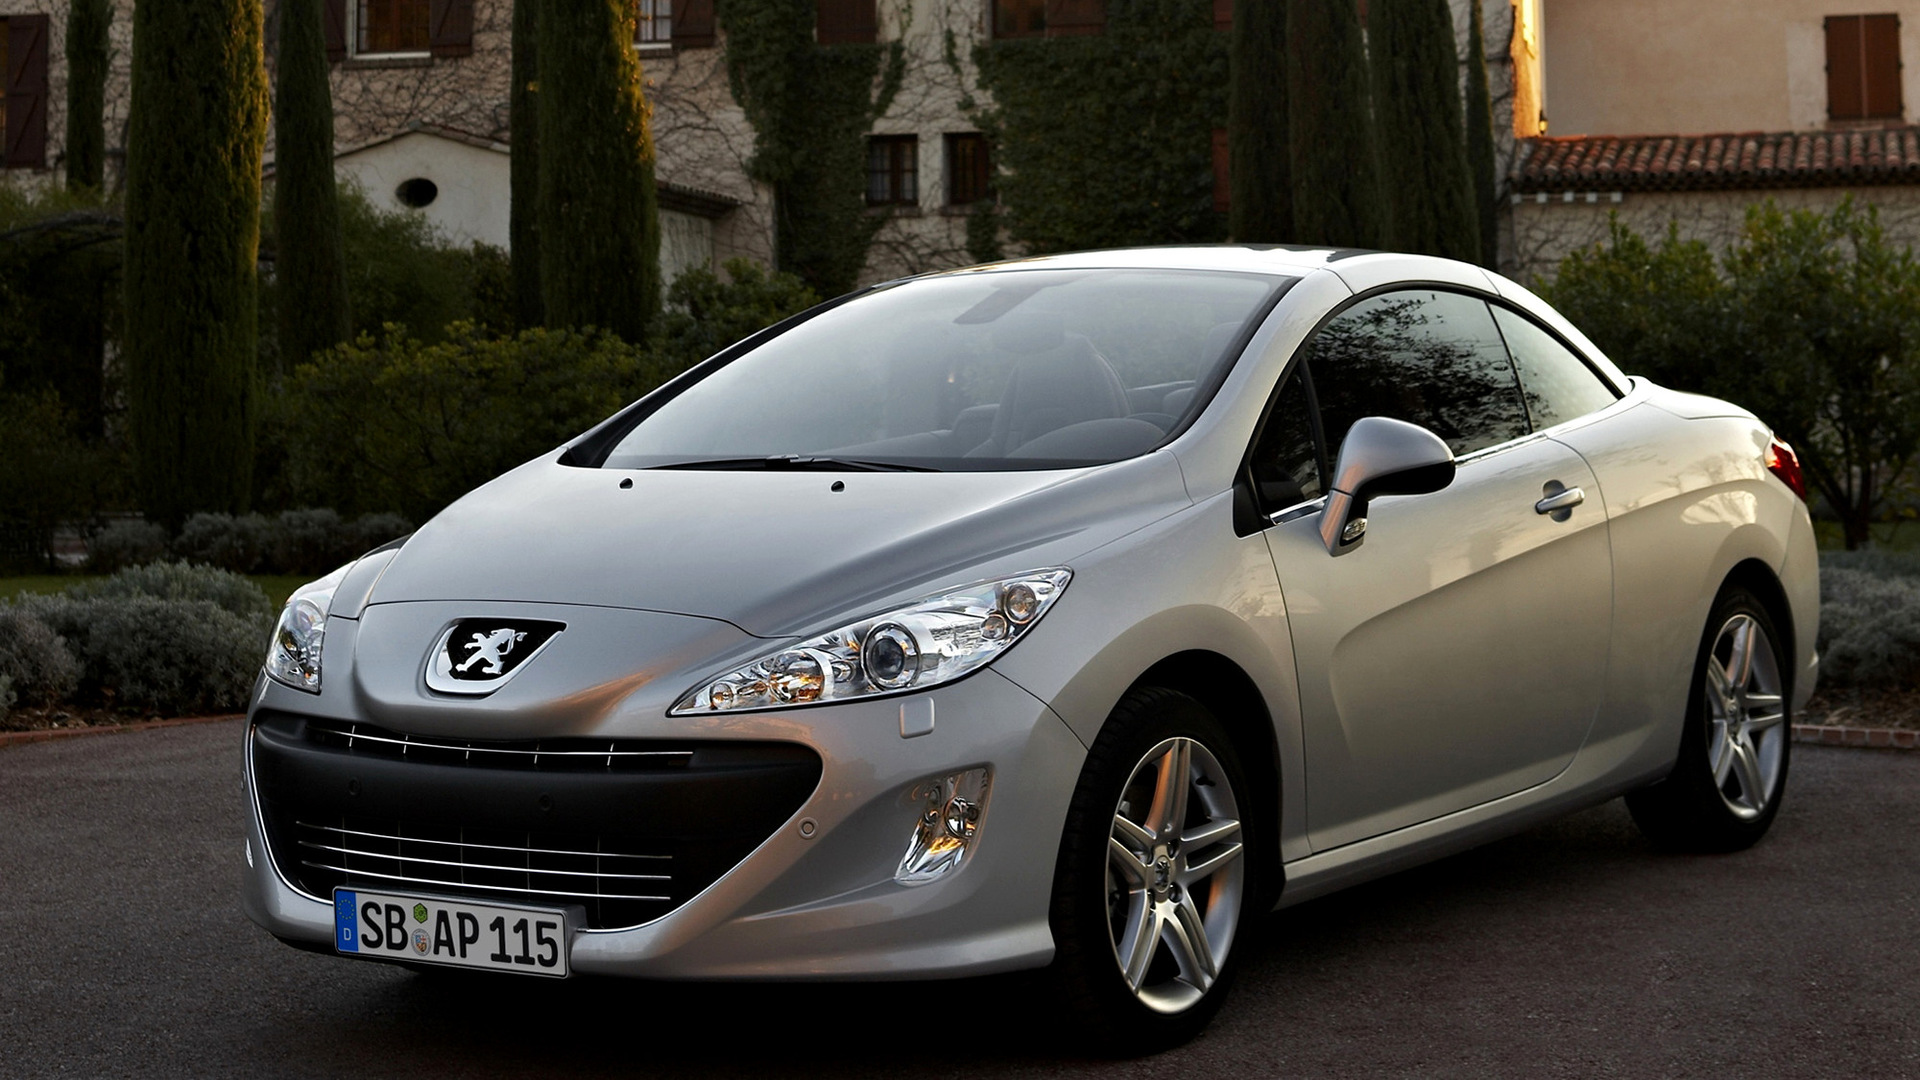 peugeot 308 cc 2009 wallpapers and hd images car pixel. Black Bedroom Furniture Sets. Home Design Ideas